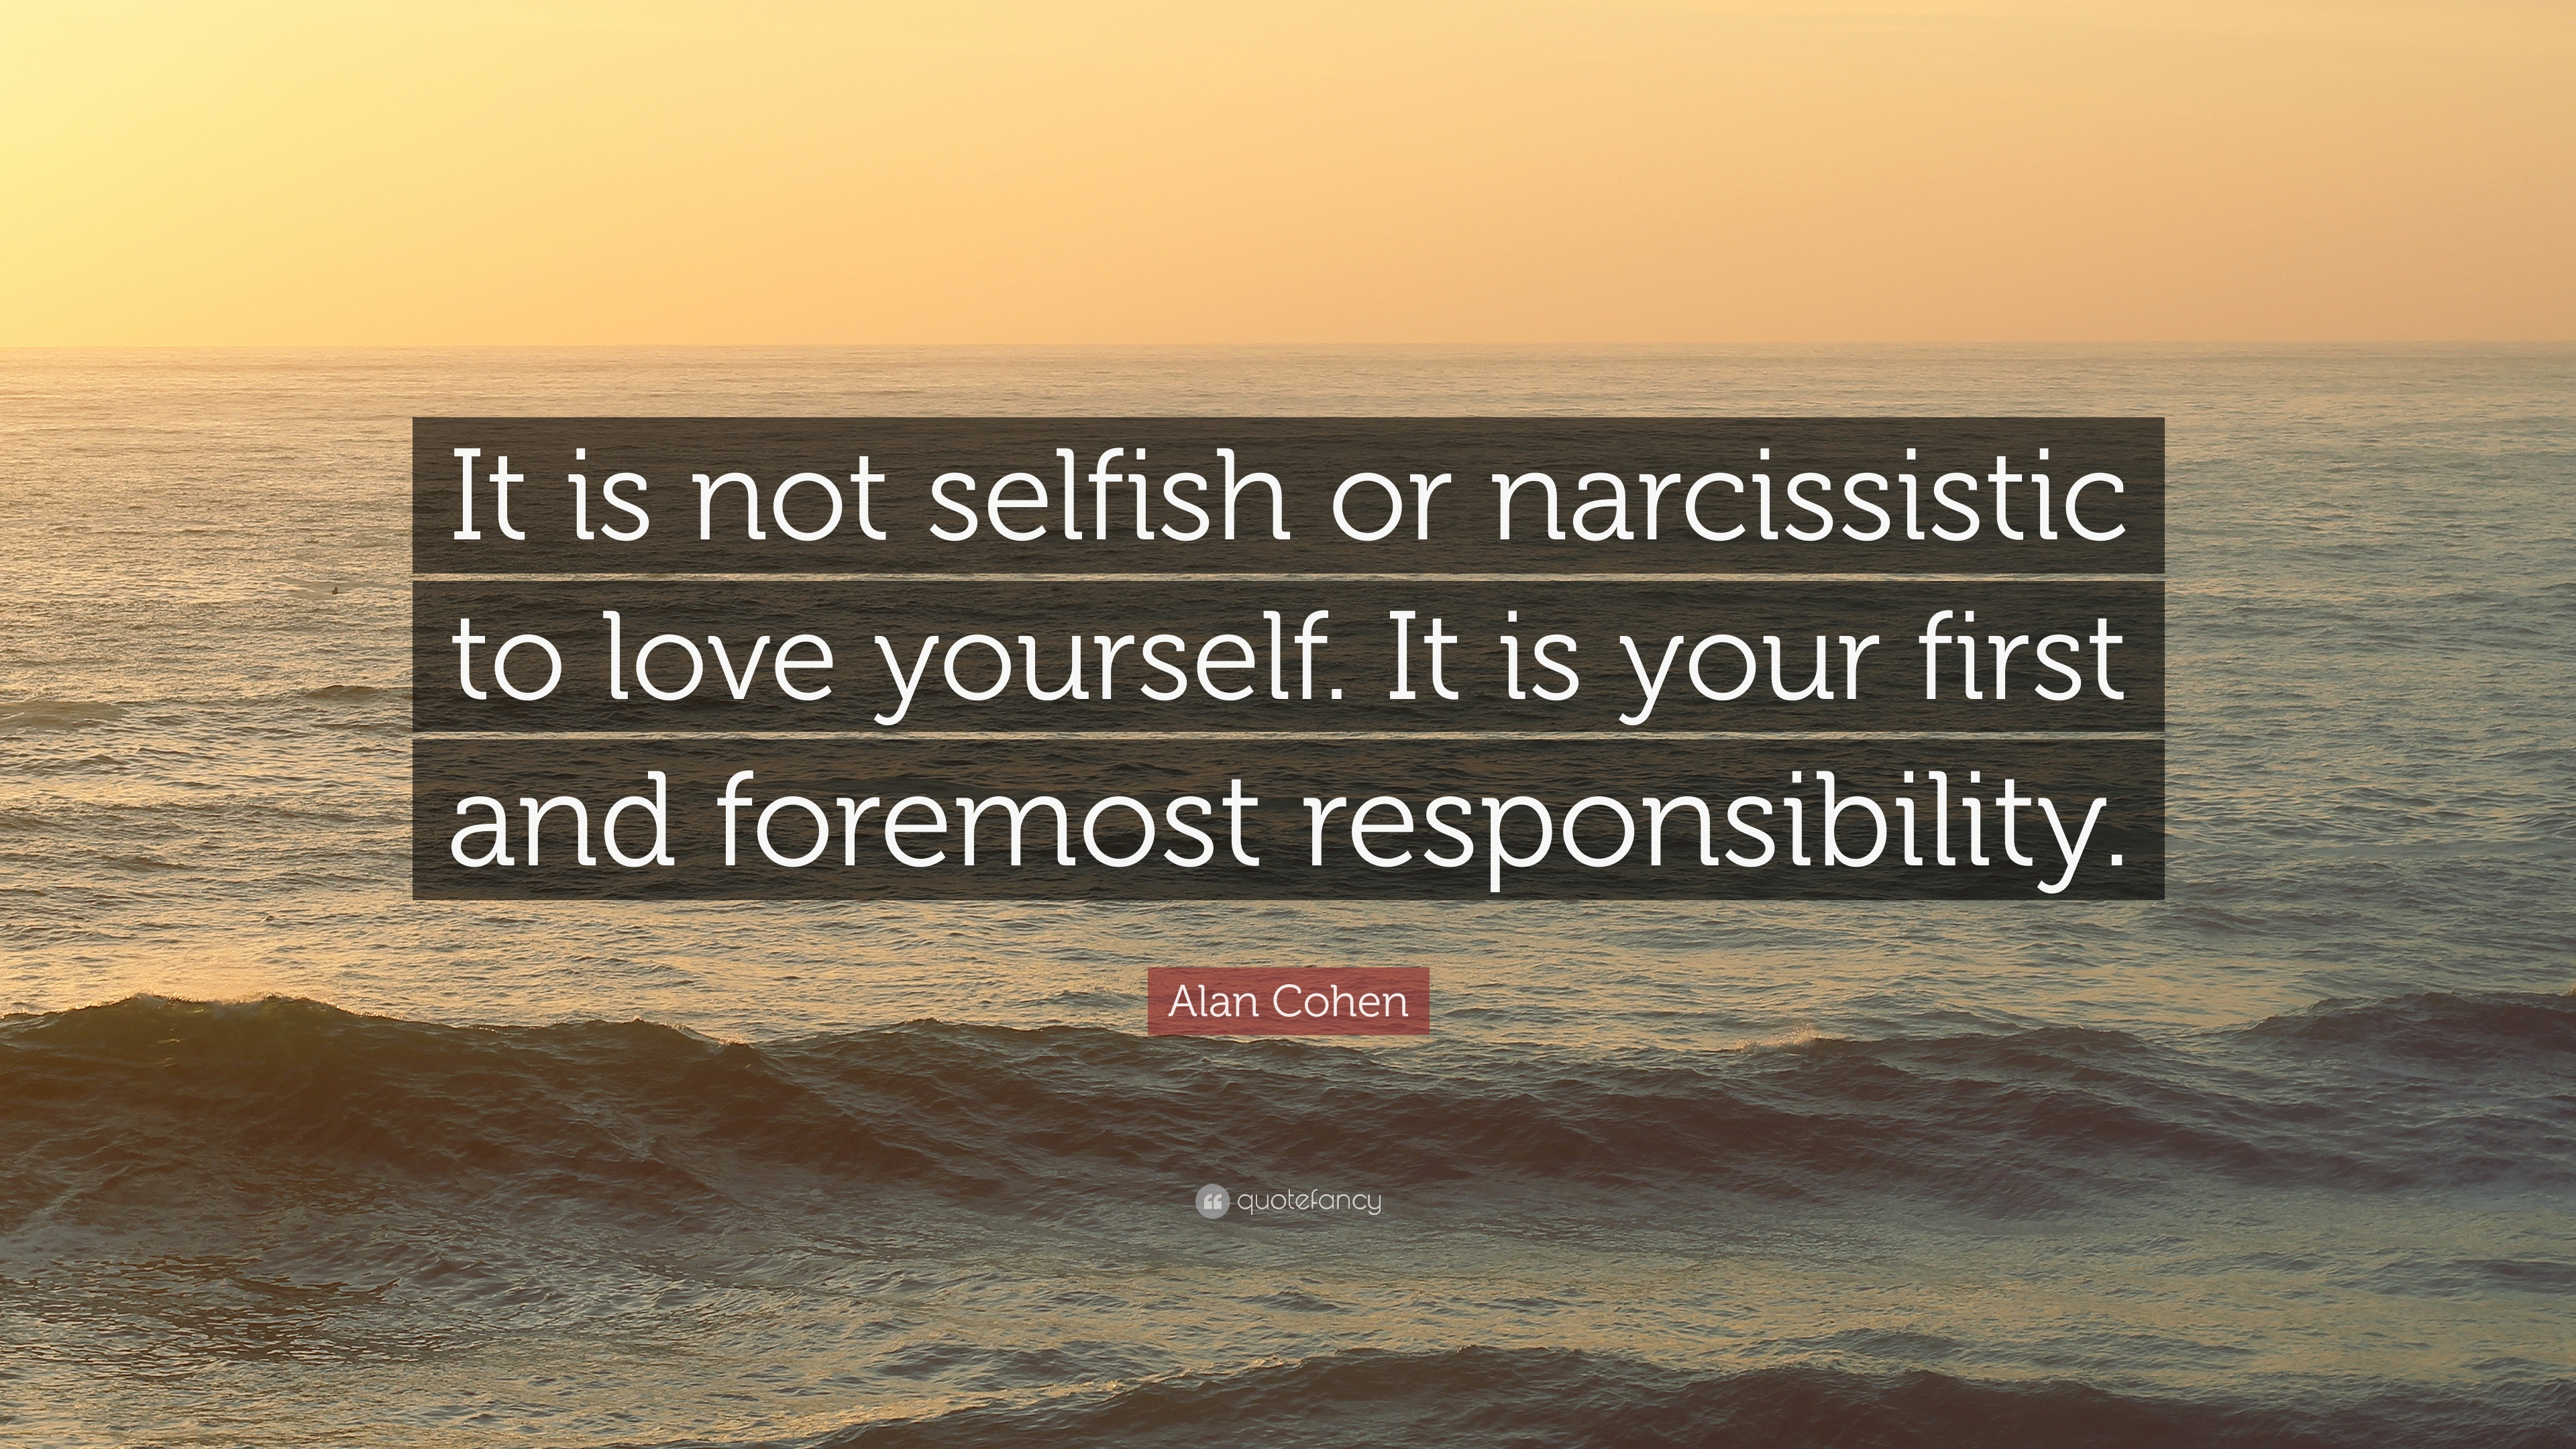 Alan Cohen Quote: U201cIt Is Not Selfish Or Narcissistic To Love Yourself. It